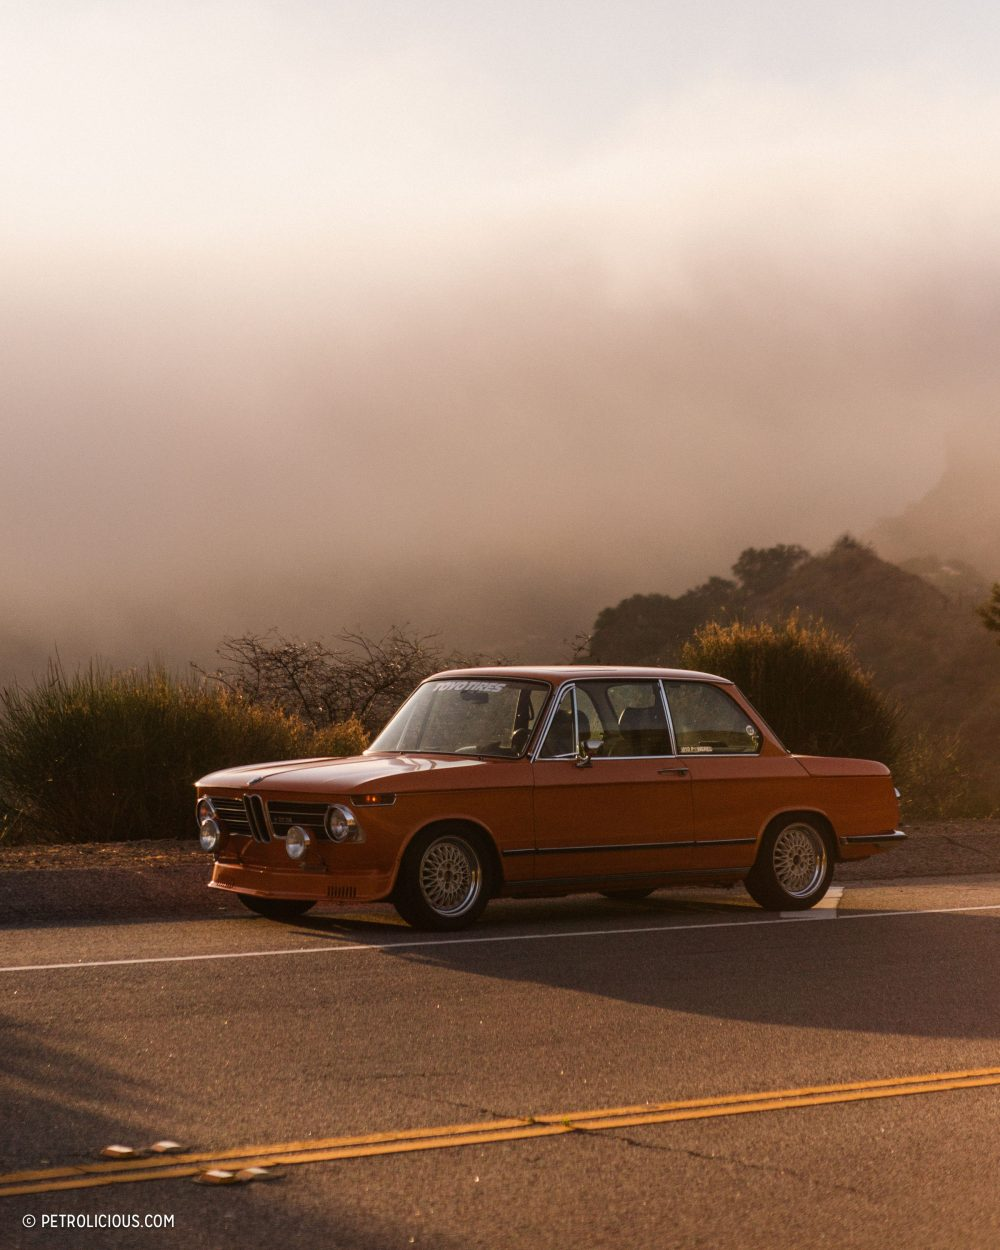 Bmw For Sale Los Angeles: This BMW 2002 Tii Stroker Is Prowling The Streets Of Los